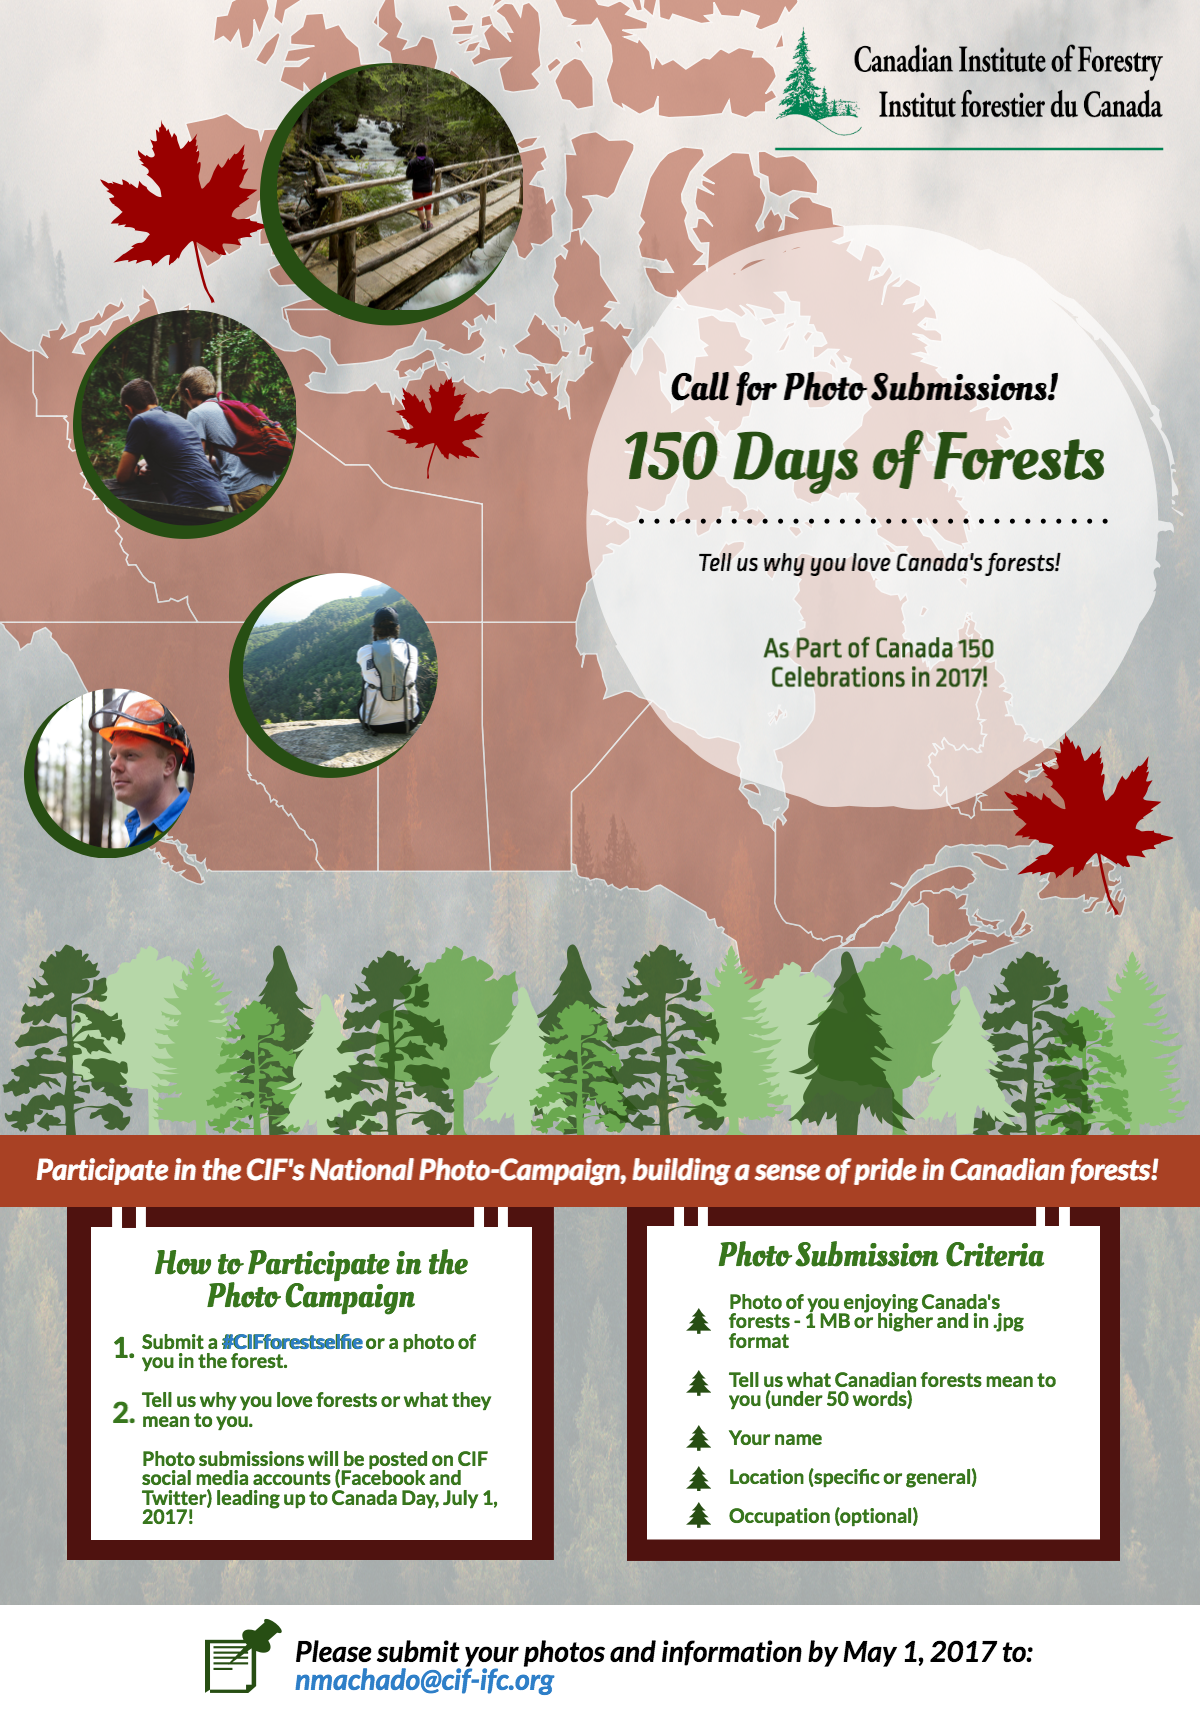 CIF 150 Days of Forests